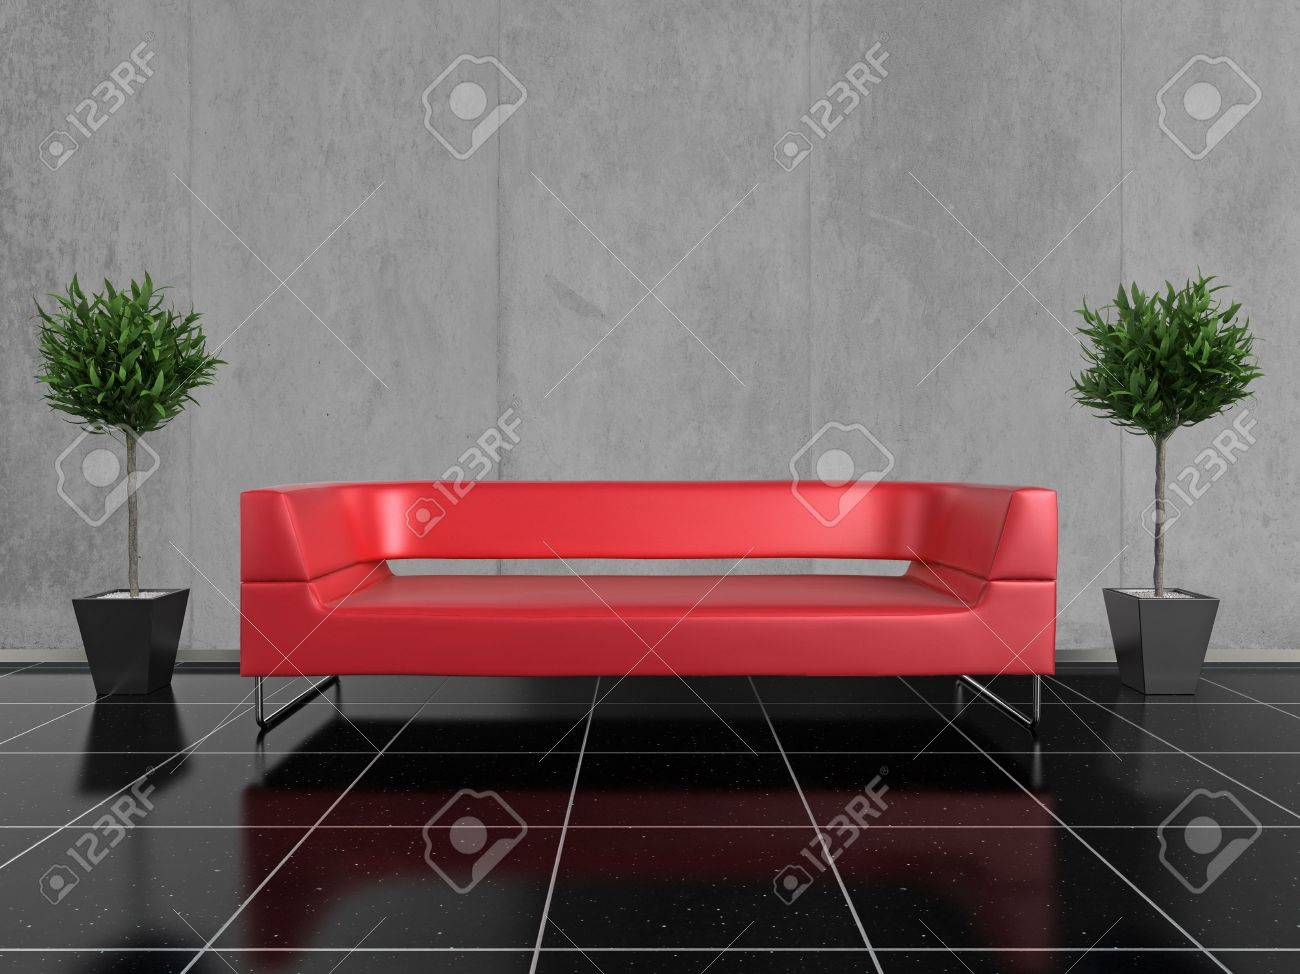 Modern Red Sofa On A Glossy Black Stone Floor, With A Plant Either ...